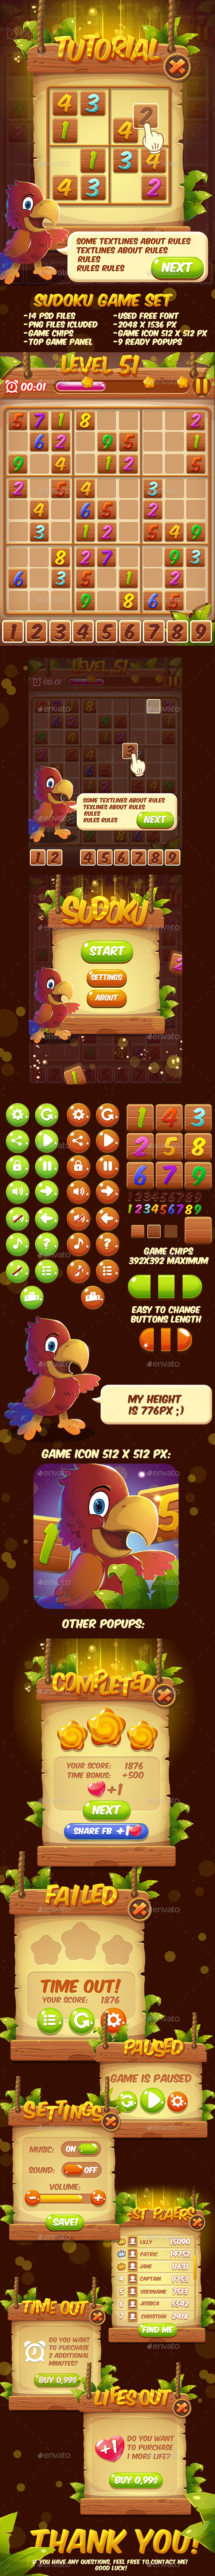 Cartoon Sudoku Puzzle Full Game Set with GUI (Game Kits)